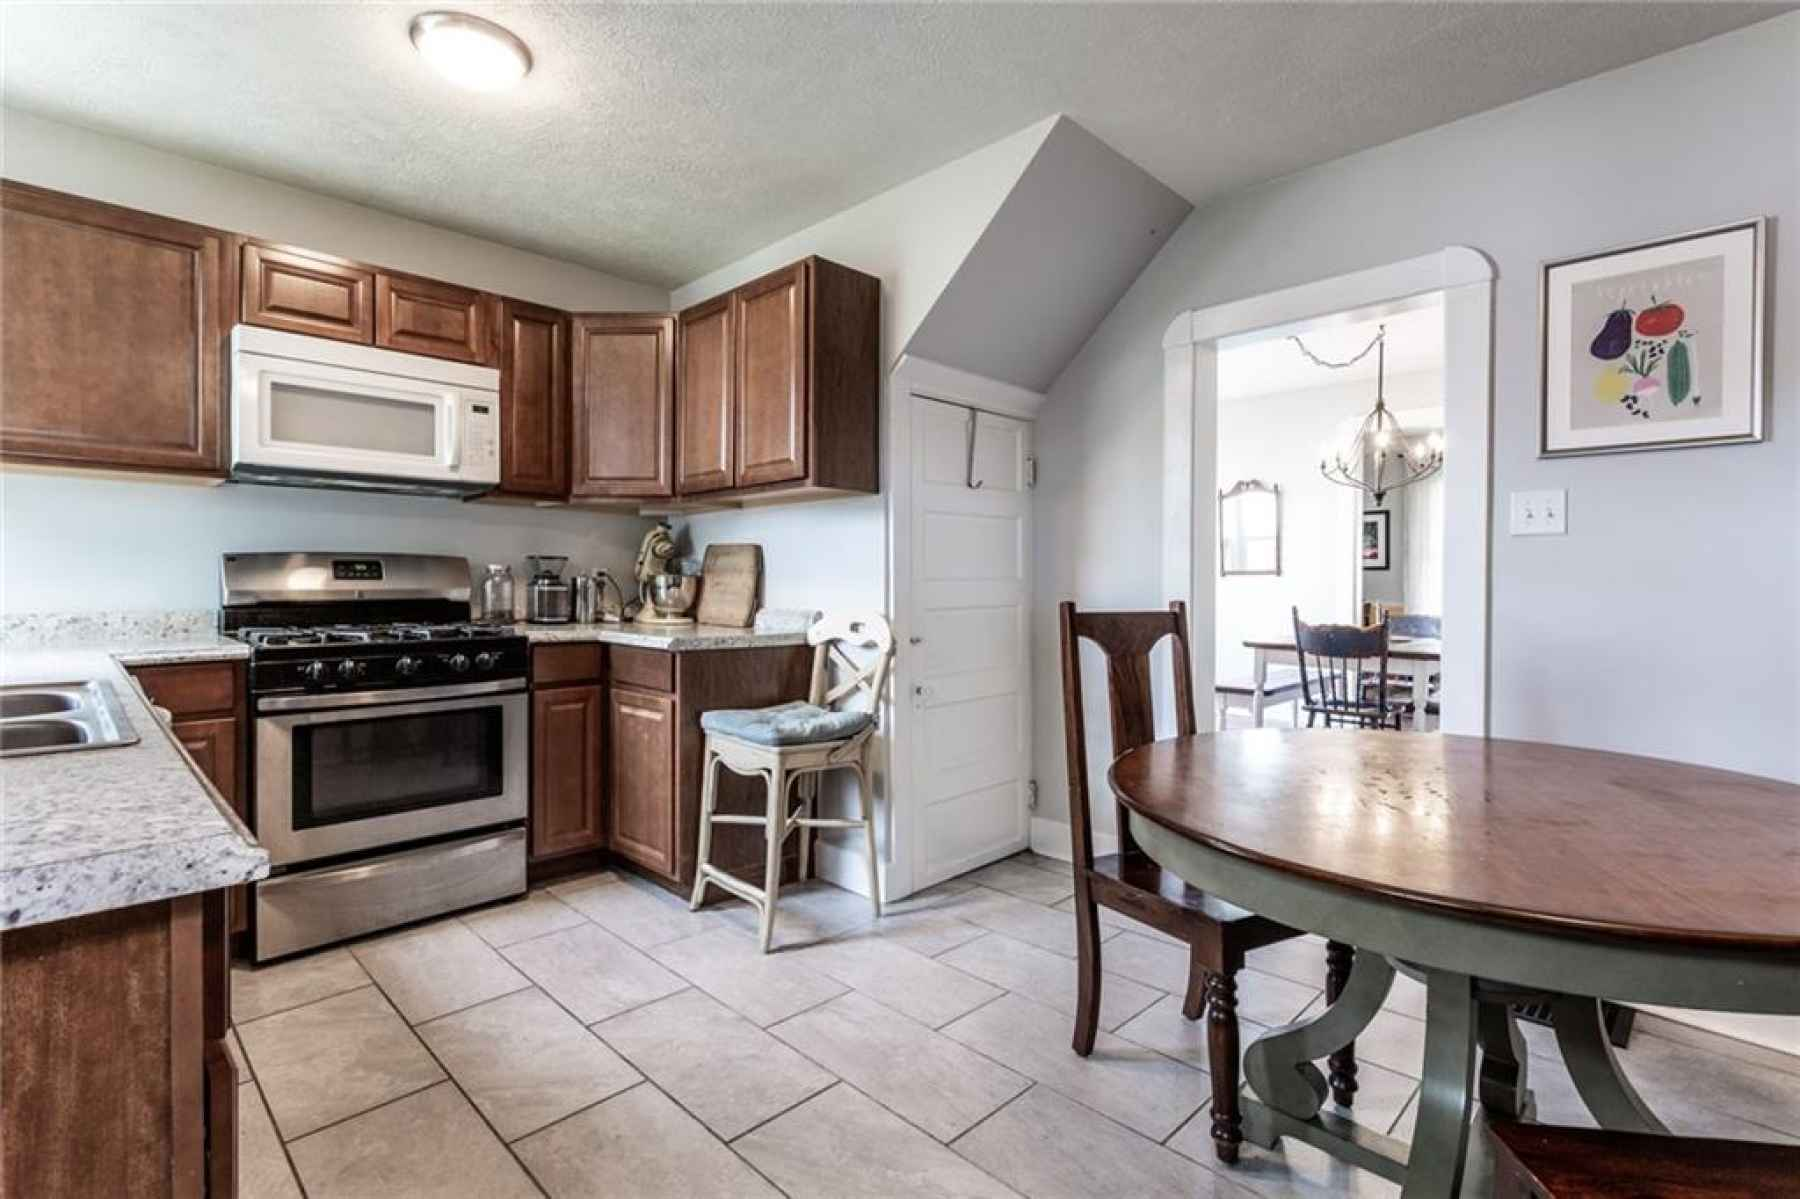 Large kitchen with plenty of counter space and cabinets!